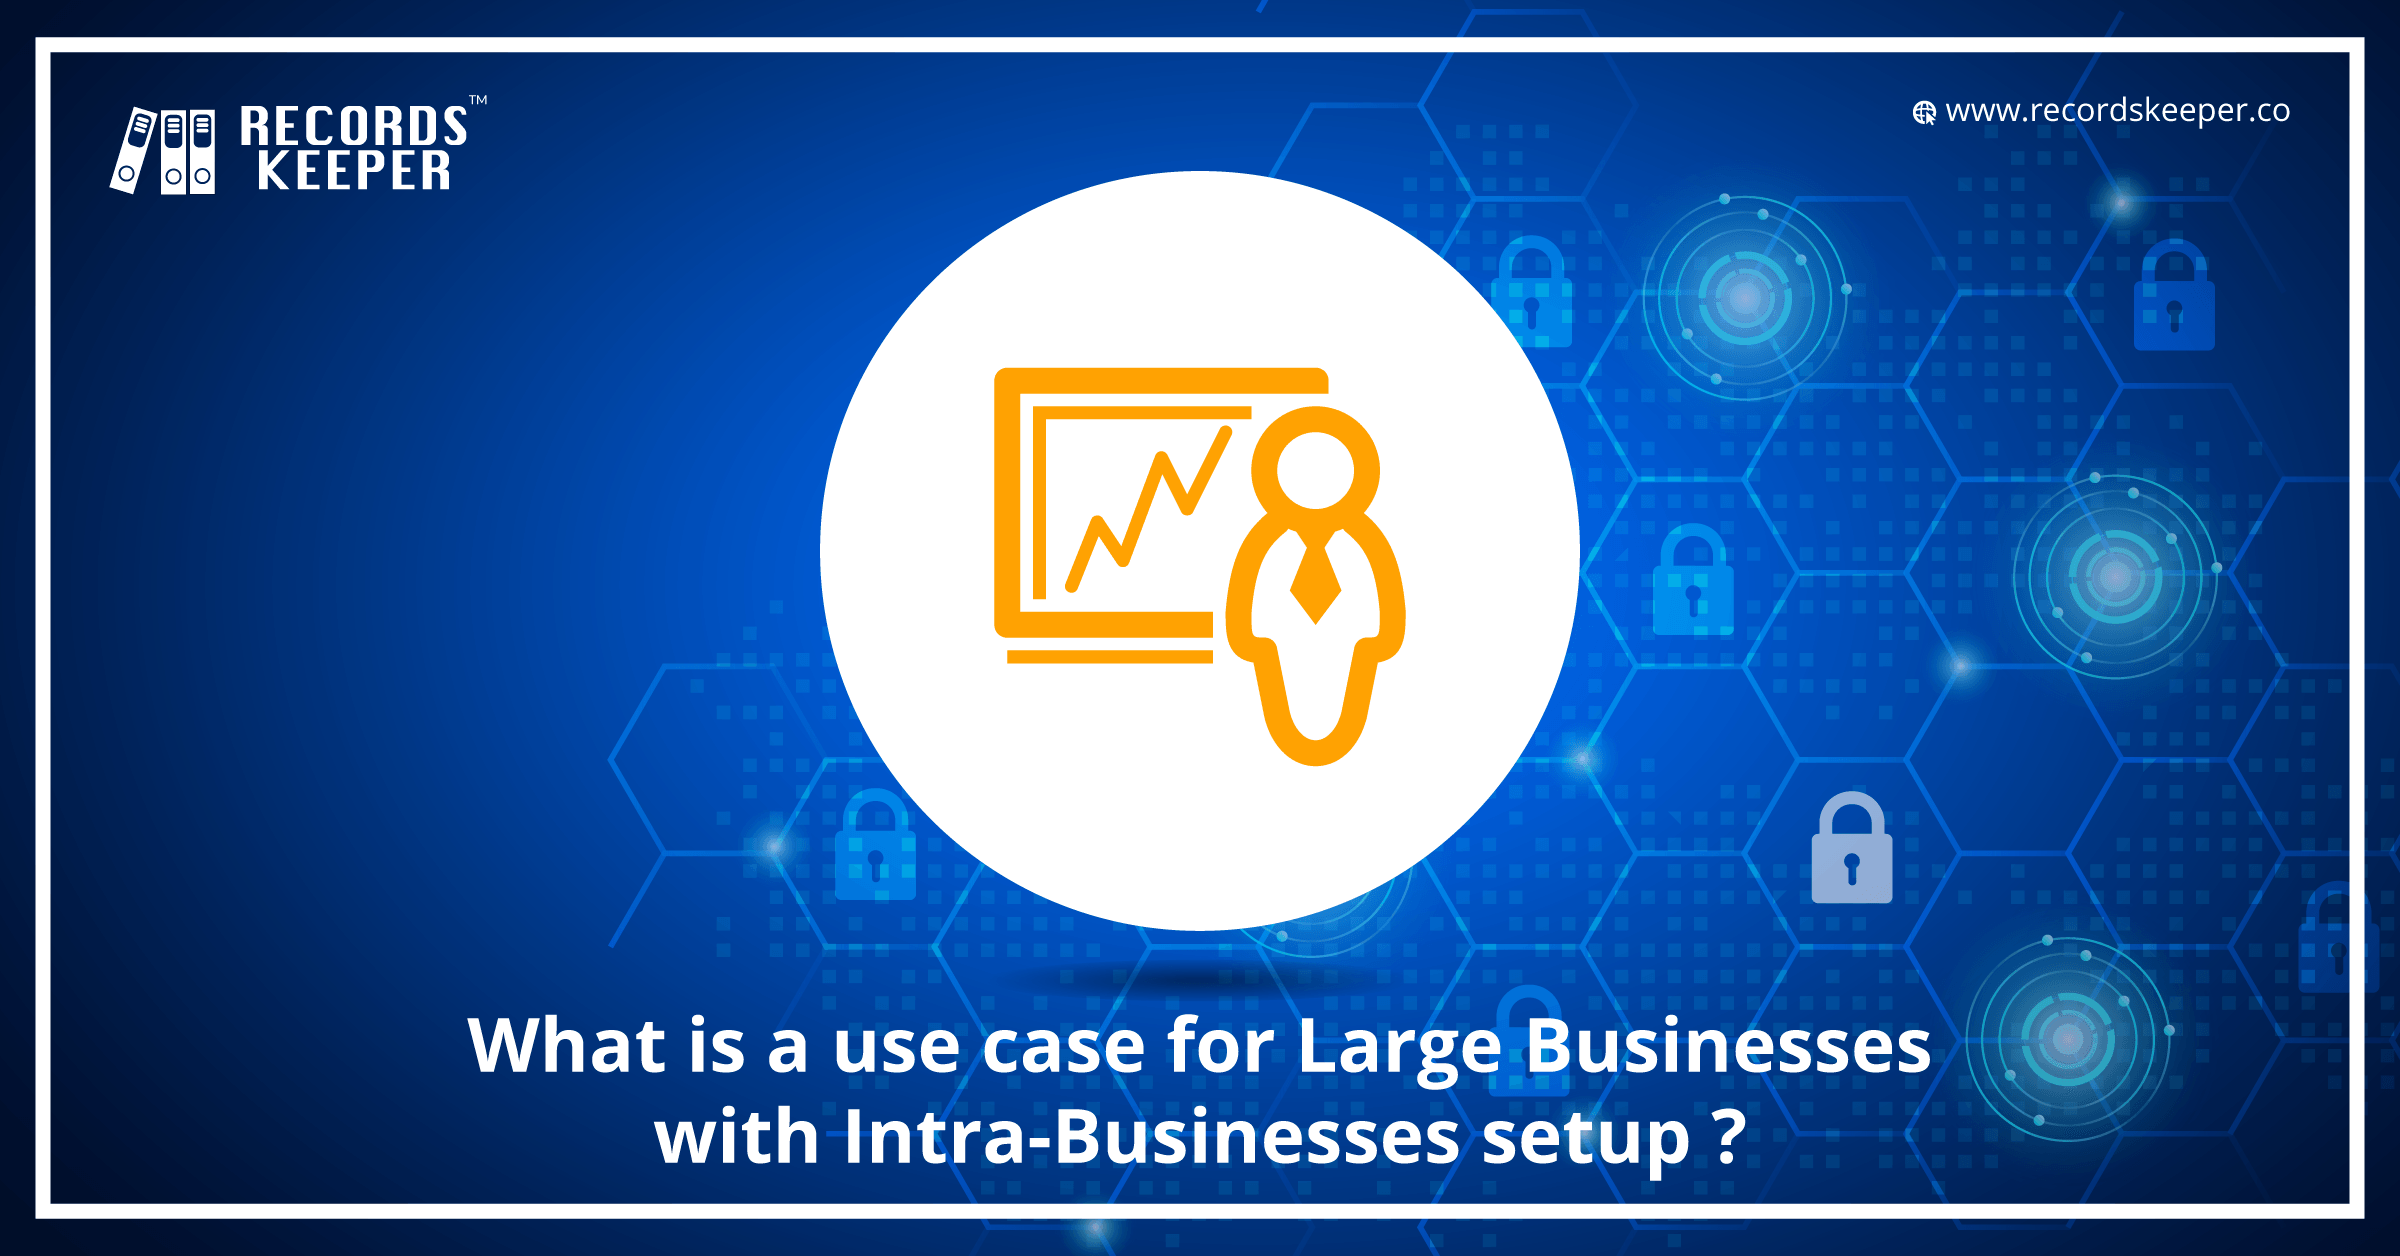 What is a use case for Large Businesses with Intra-Businesses setup?